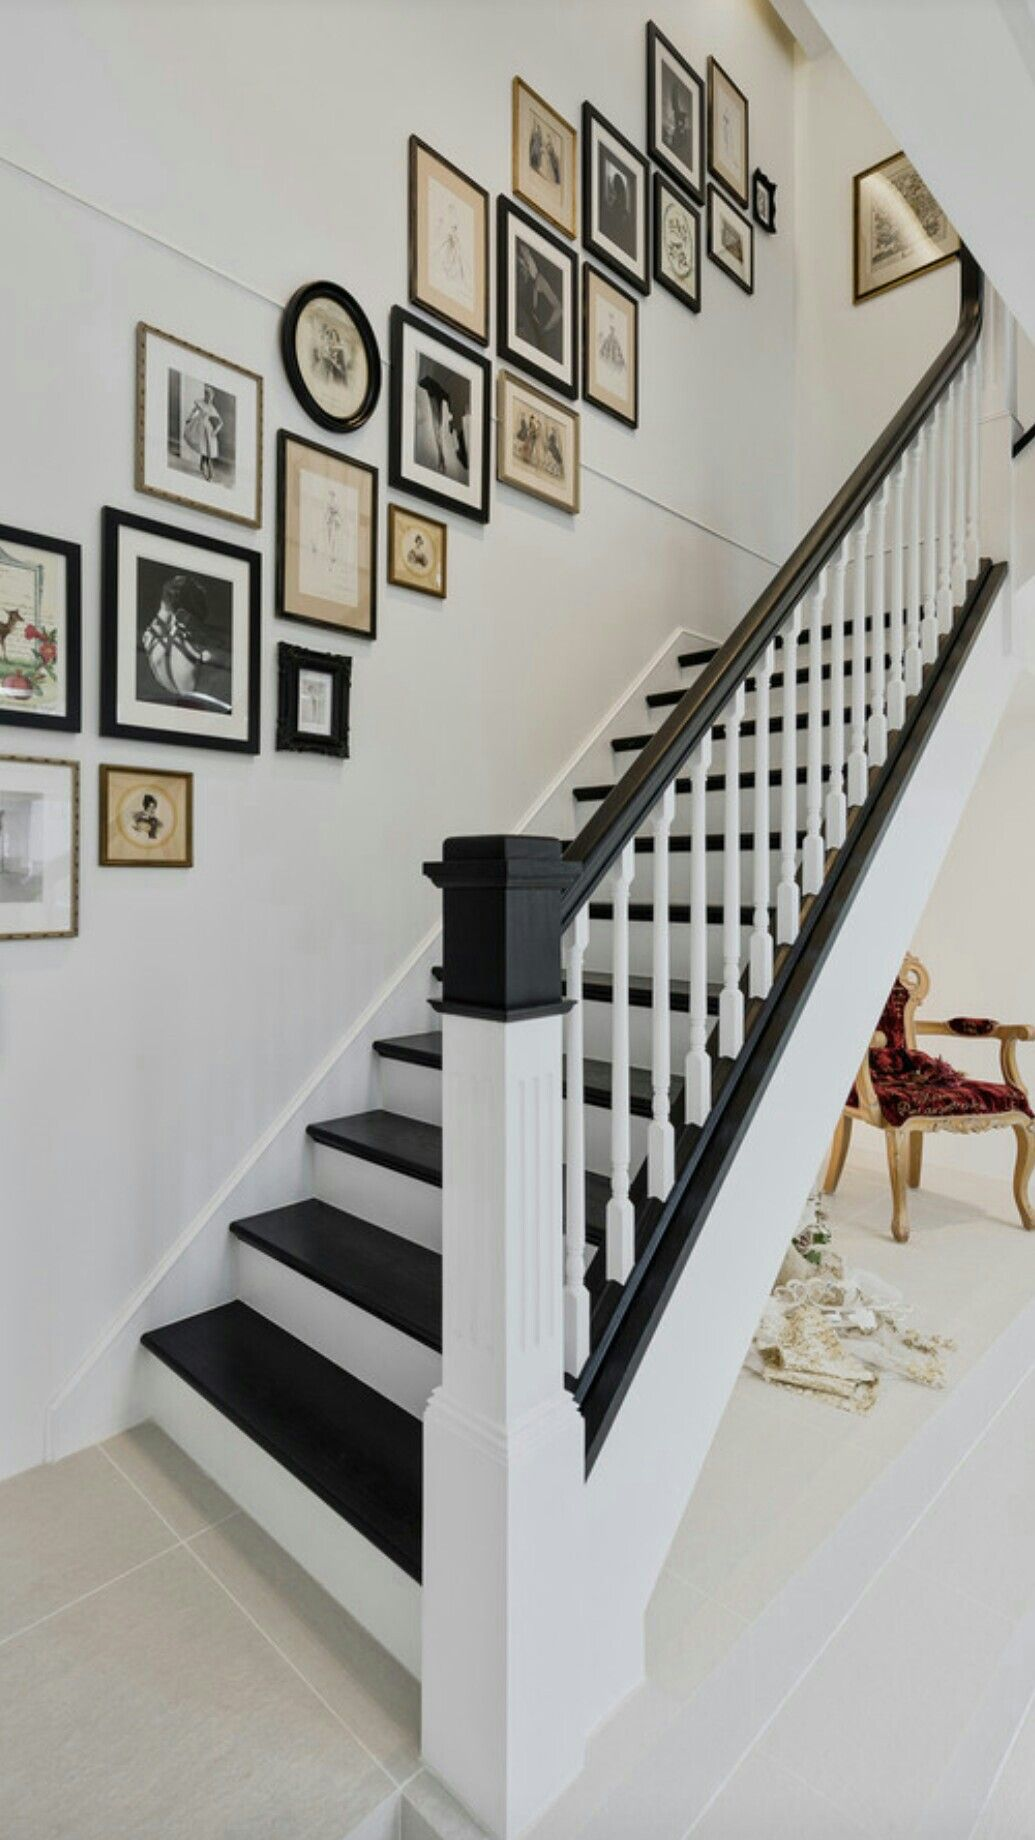 escalier peint blanc noir renov escalier pinterest escaliers peindre et noir. Black Bedroom Furniture Sets. Home Design Ideas